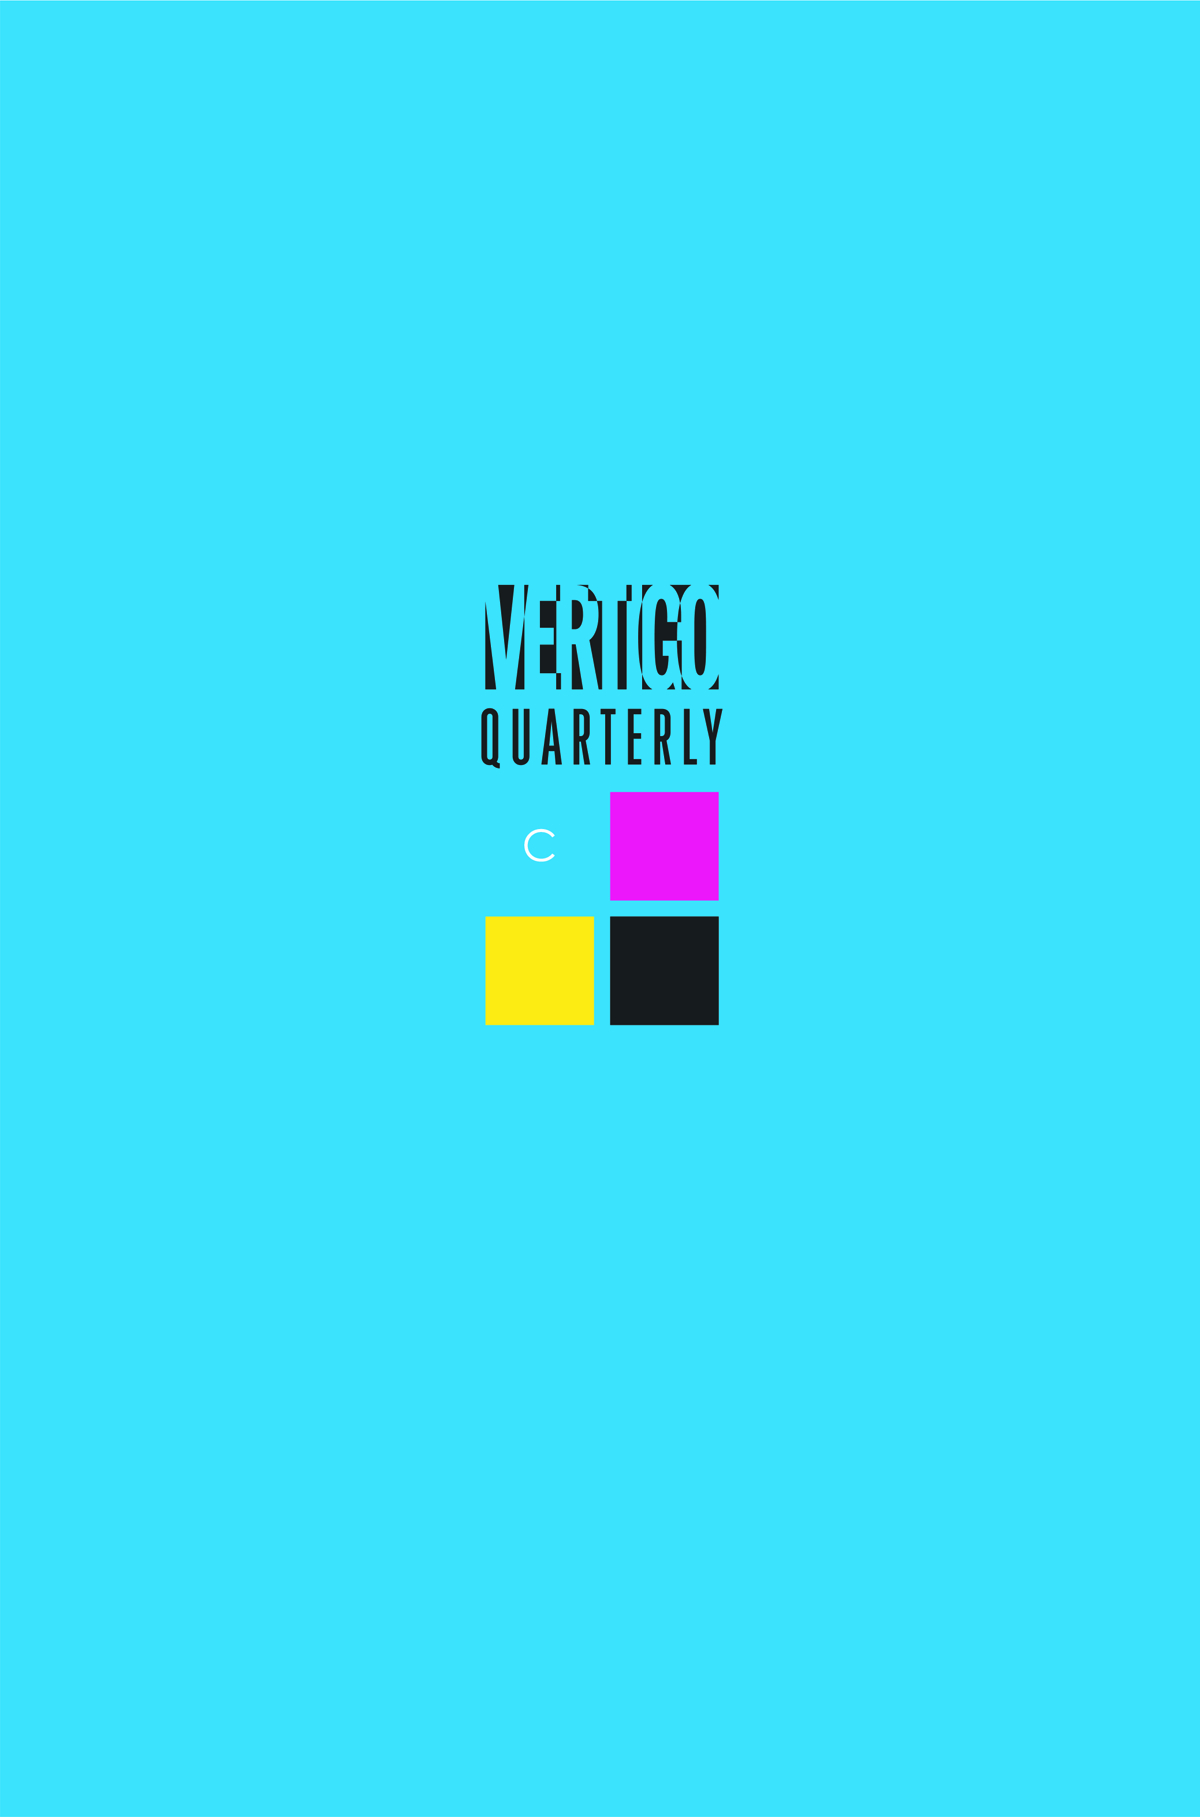 VERTIGO QUARTERLY #1 CYAN